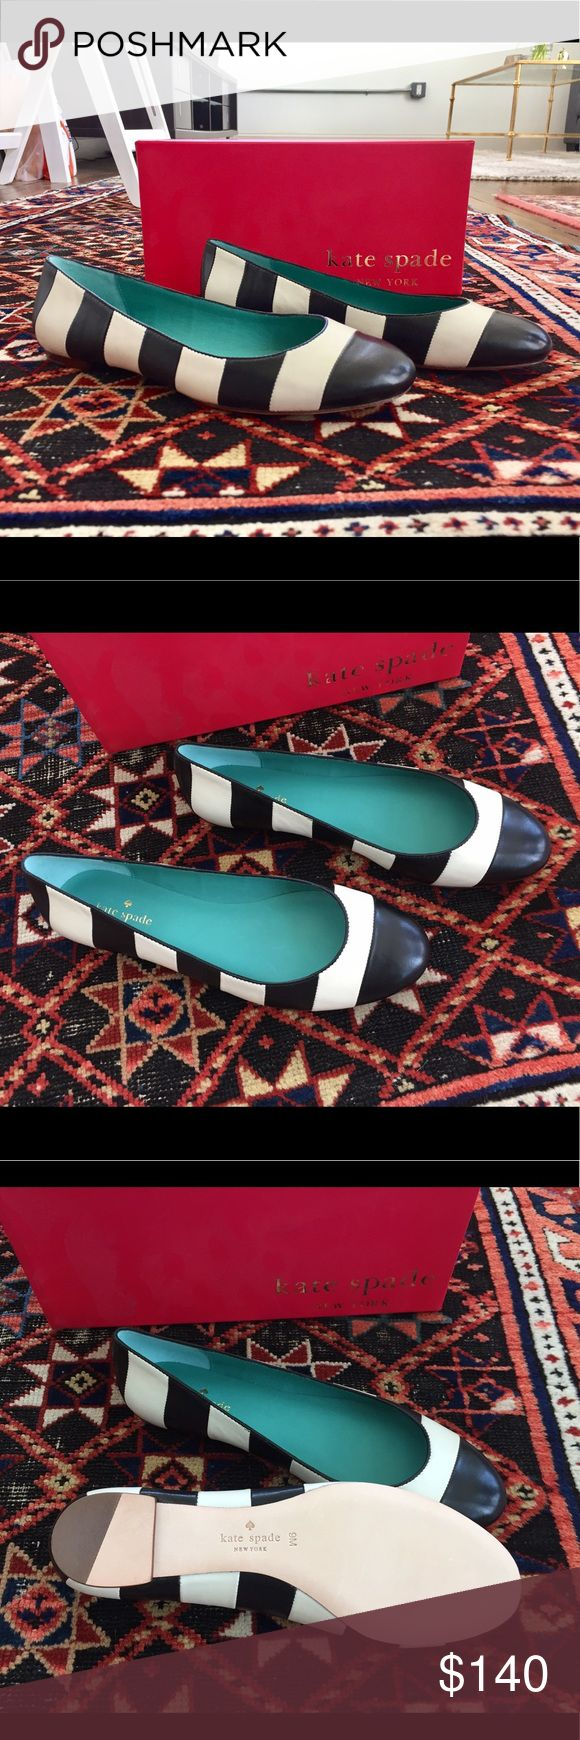 NWT Kate Spade Tanya Flats Brand new in box with original stuffing. Nautical stripes with round-toe ballet flat that pairs perfectly with dresses and jeans of any color. Black and white stripes are a classic versatile combo! 100% leather. Sold out everywhere! kate spade Shoes Flats & Loafers